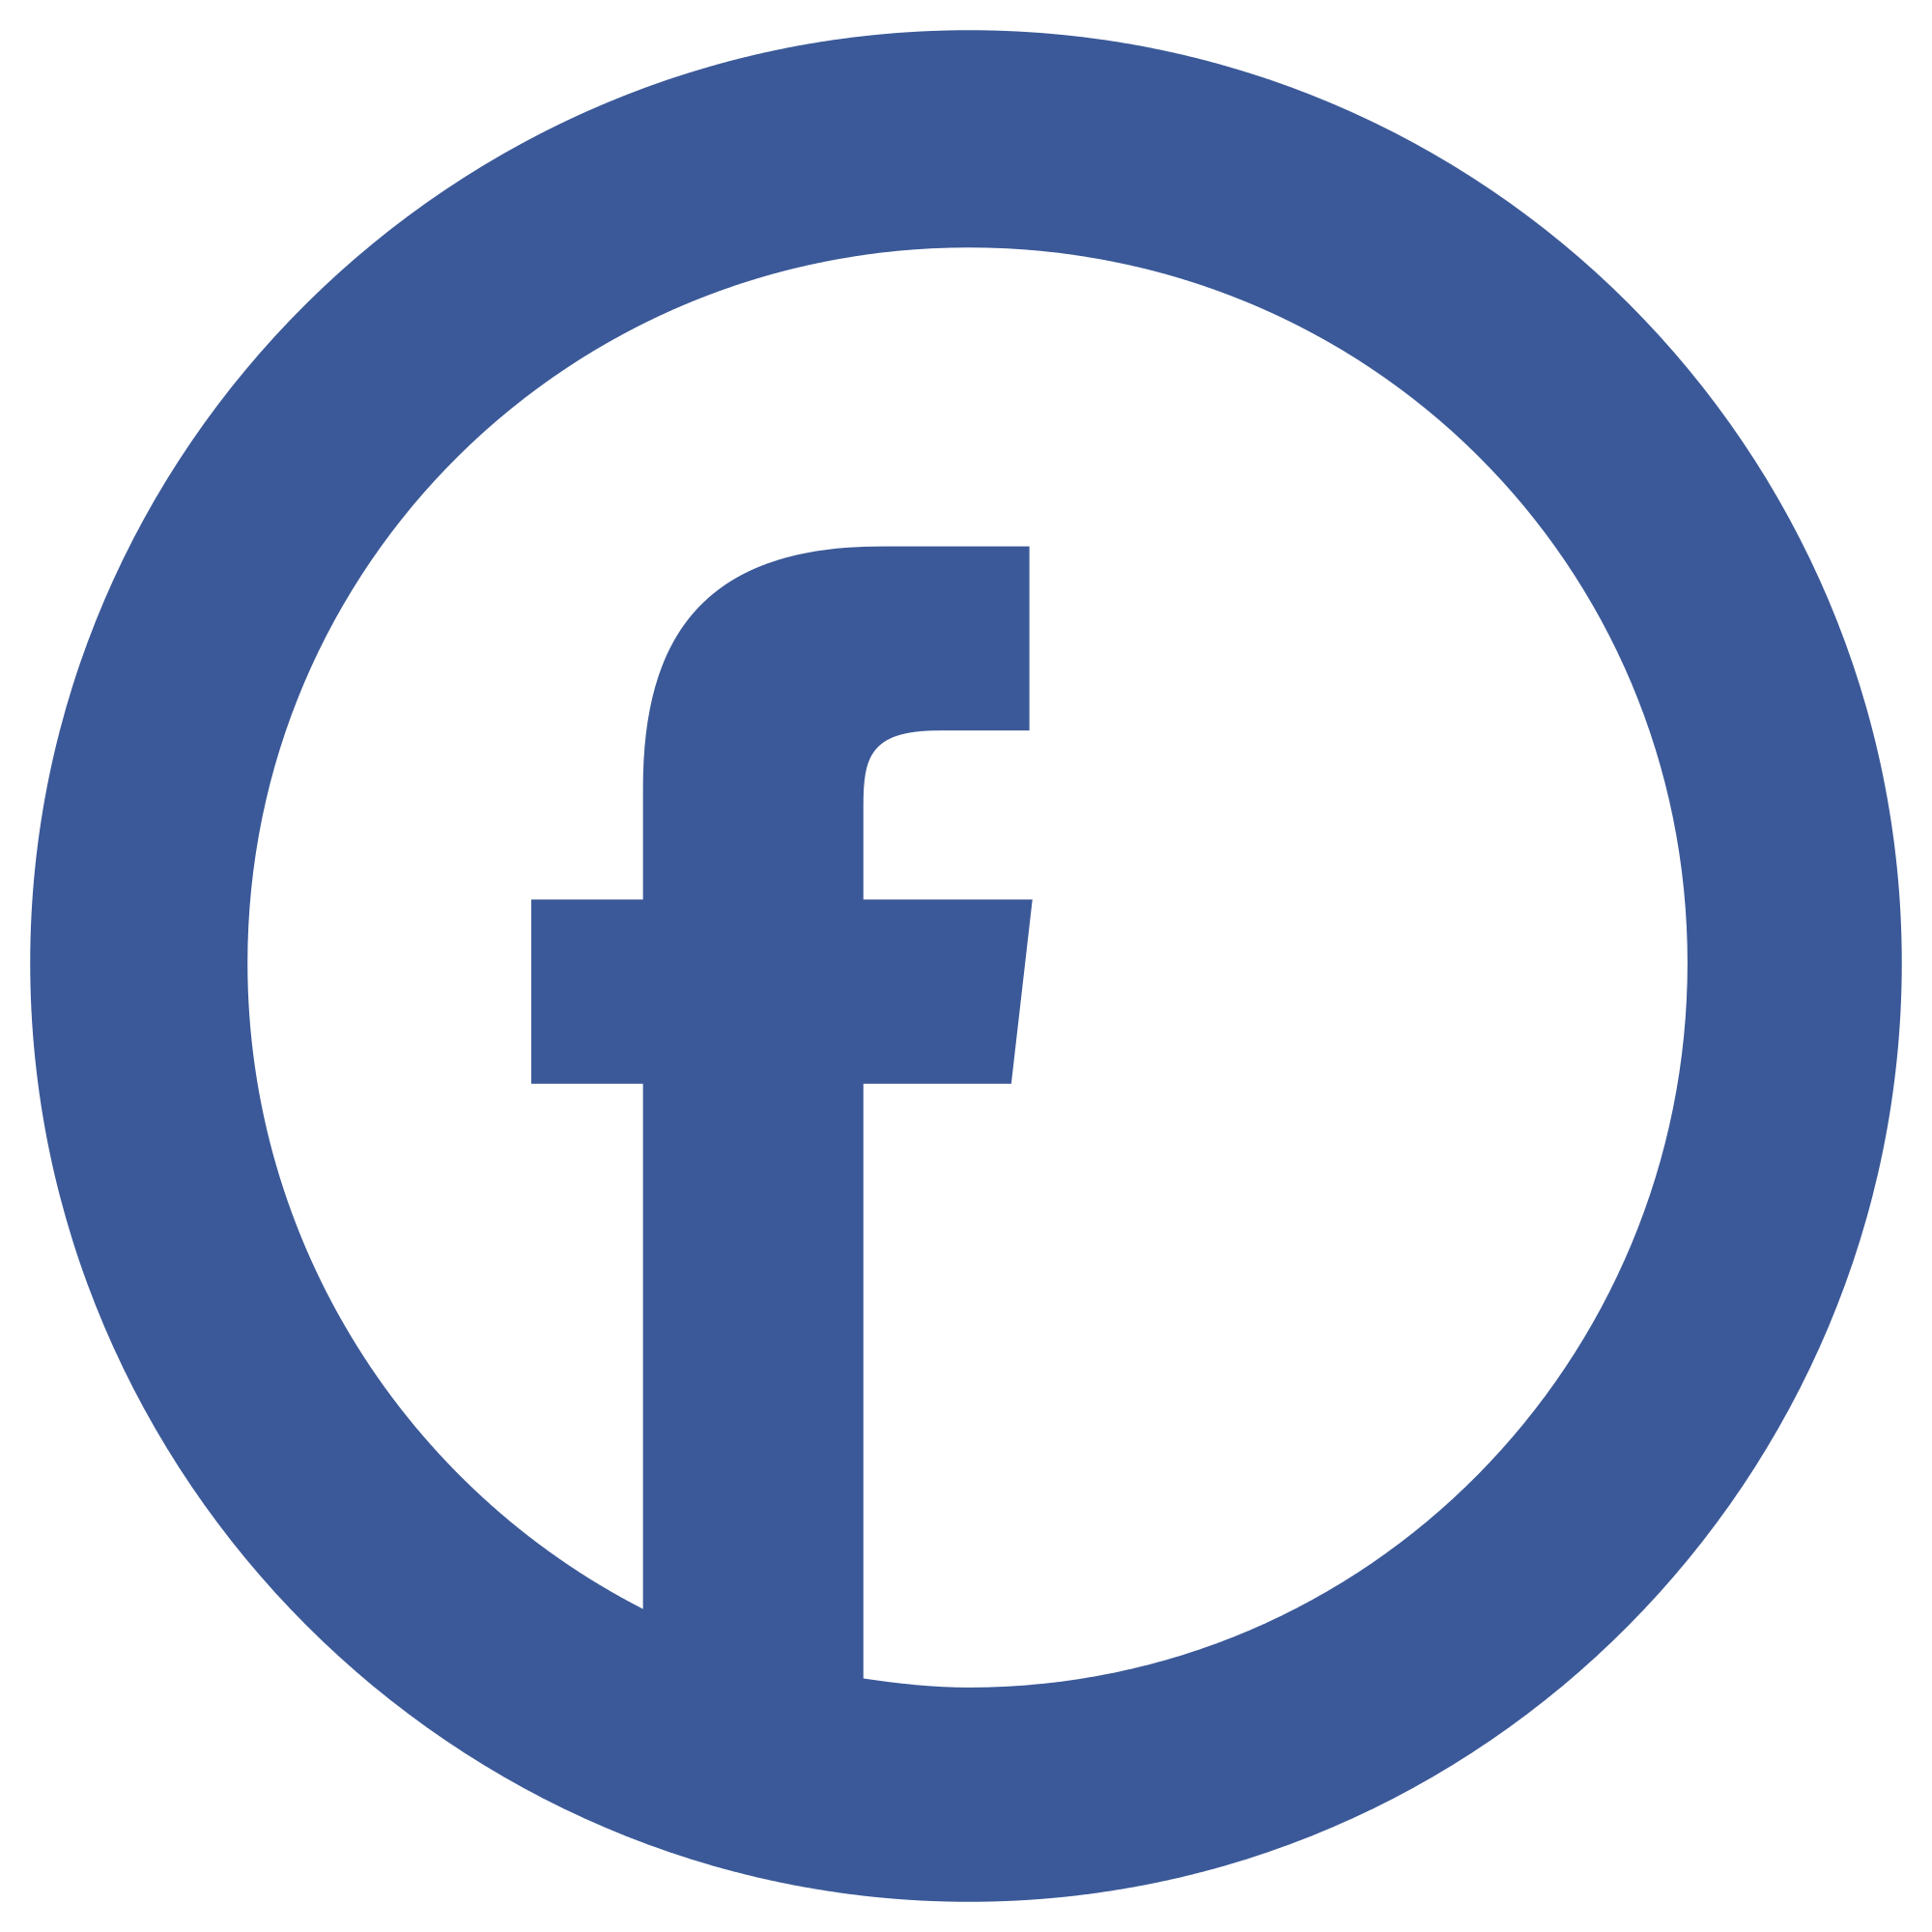 Facebook circle png. File svg wikimedia commons